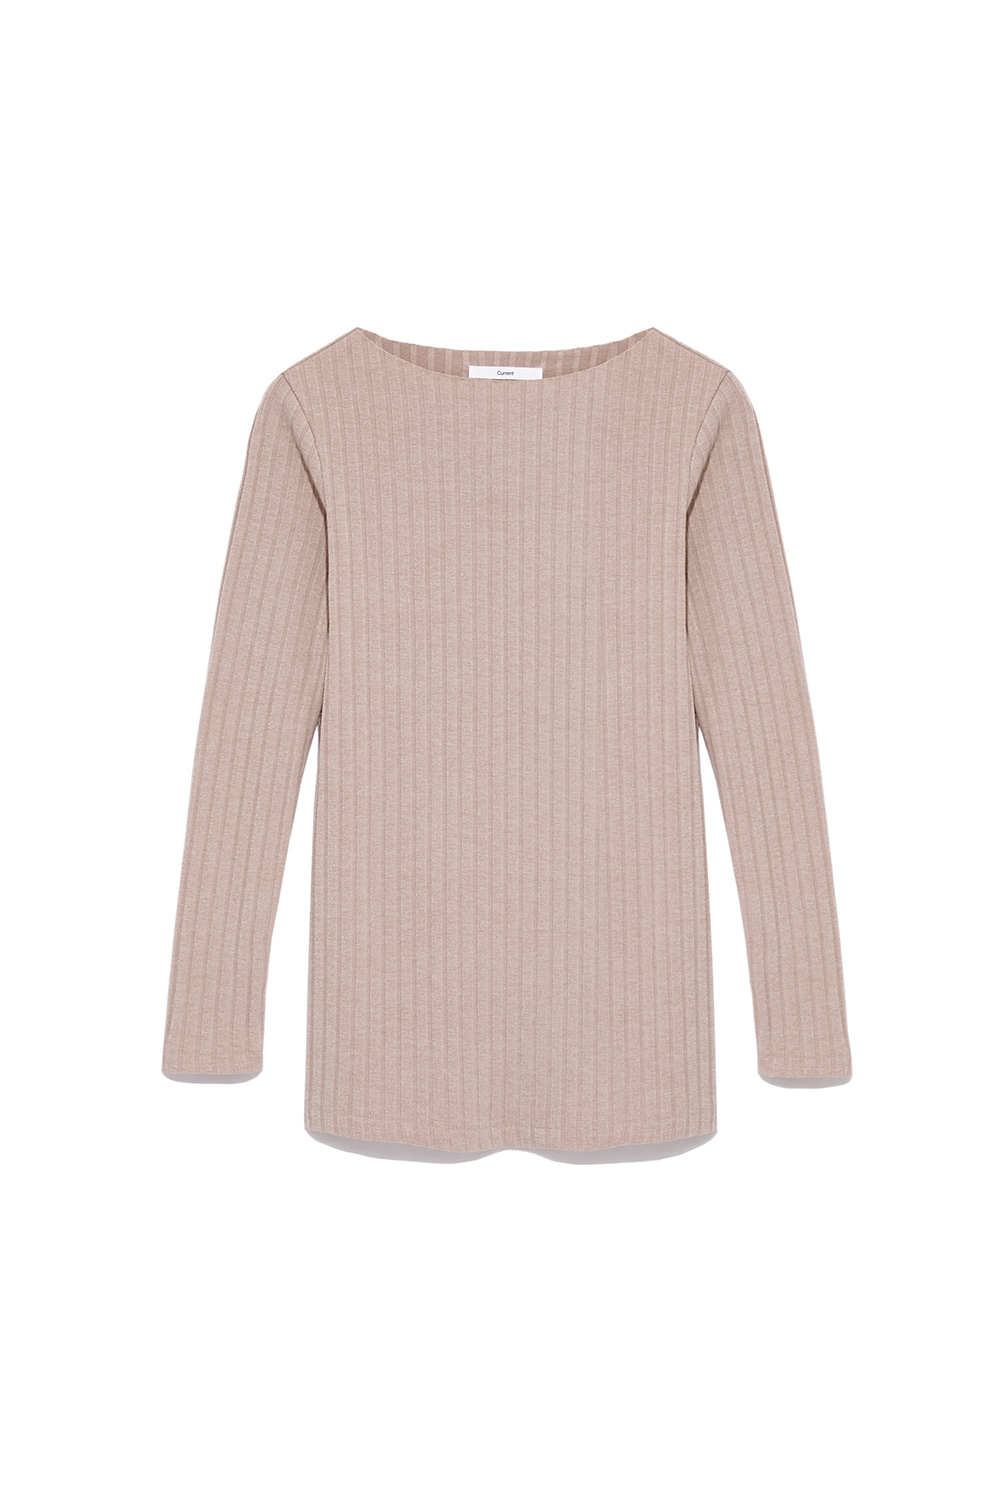 Slit Long Sleeve Tee Women [Beige] -50%